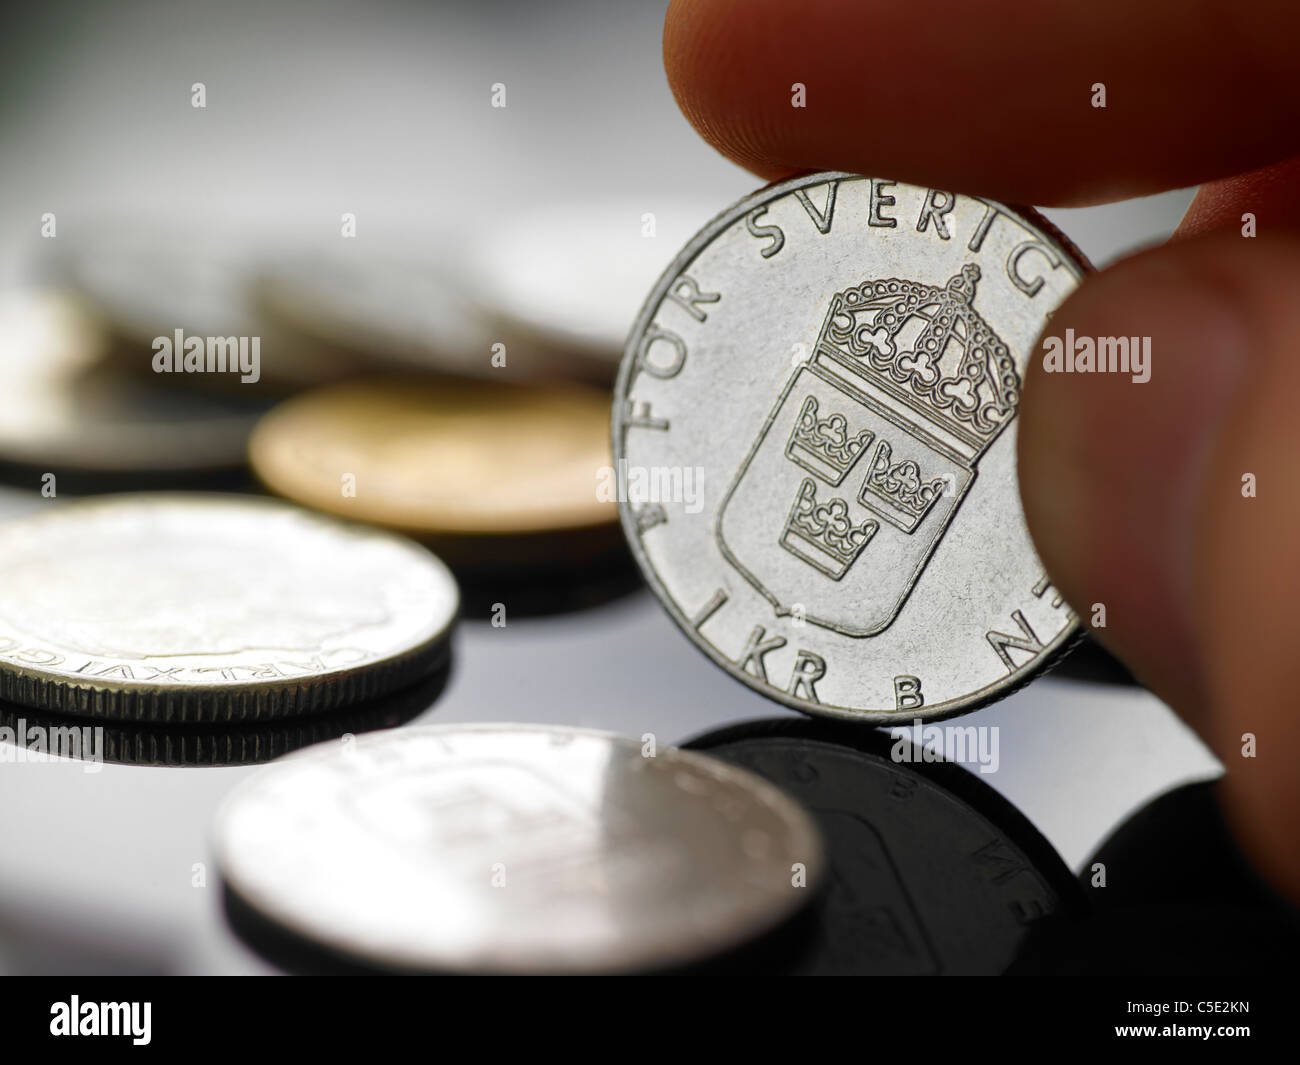 Close-up of a hand holding Swedish coin along the coins on table - Stock Image